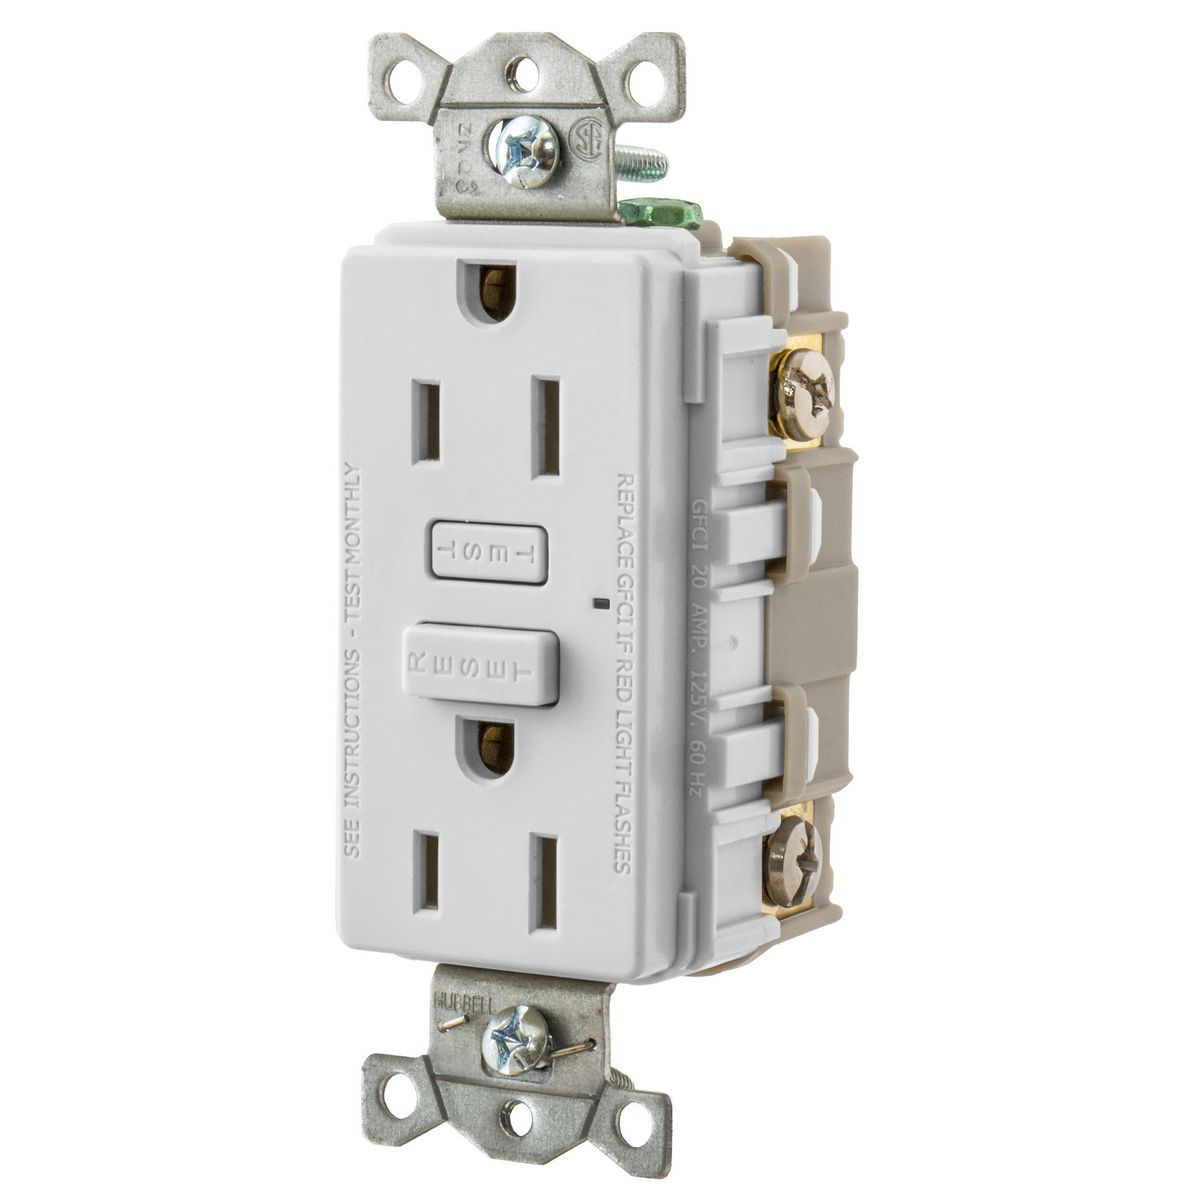 A point of use 15a GFCI equipped outlet